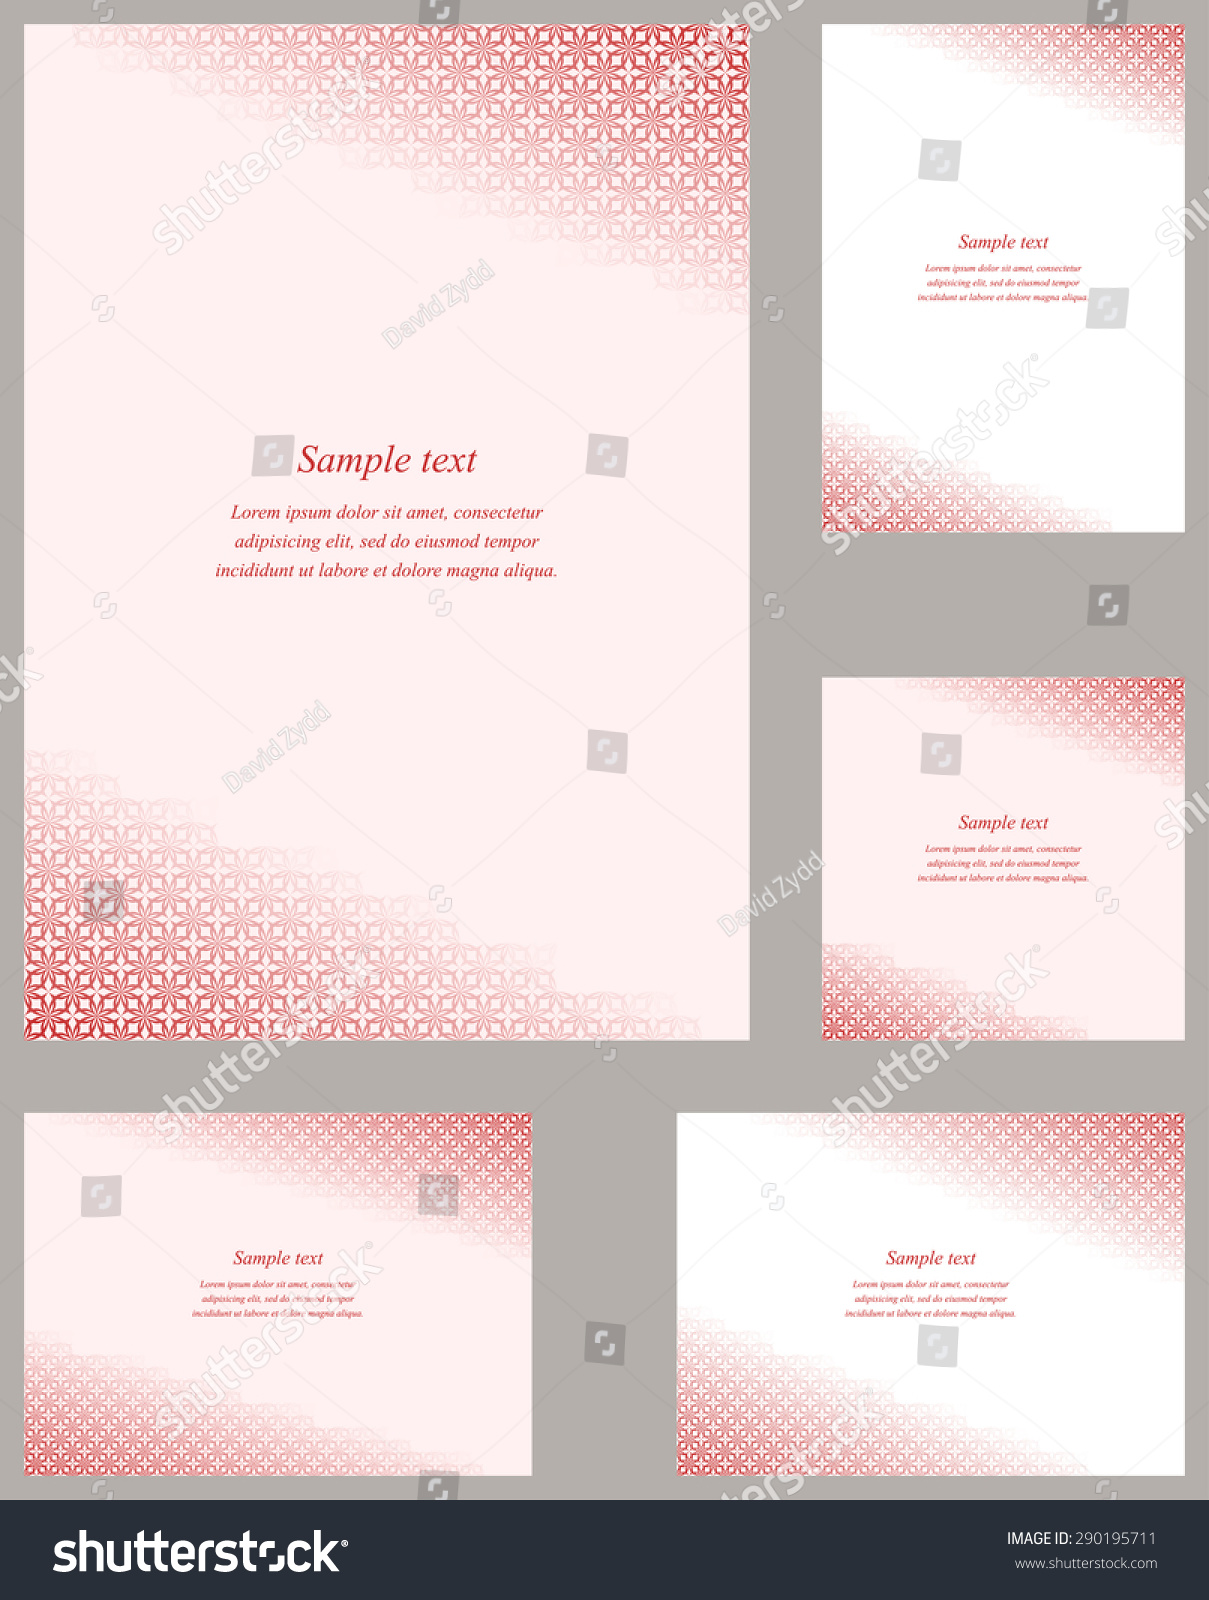 Red gothic pattern page corner design stock vector 290195711 red gothic pattern page corner design template for brochure invitation greeting card etc kristyandbryce Images